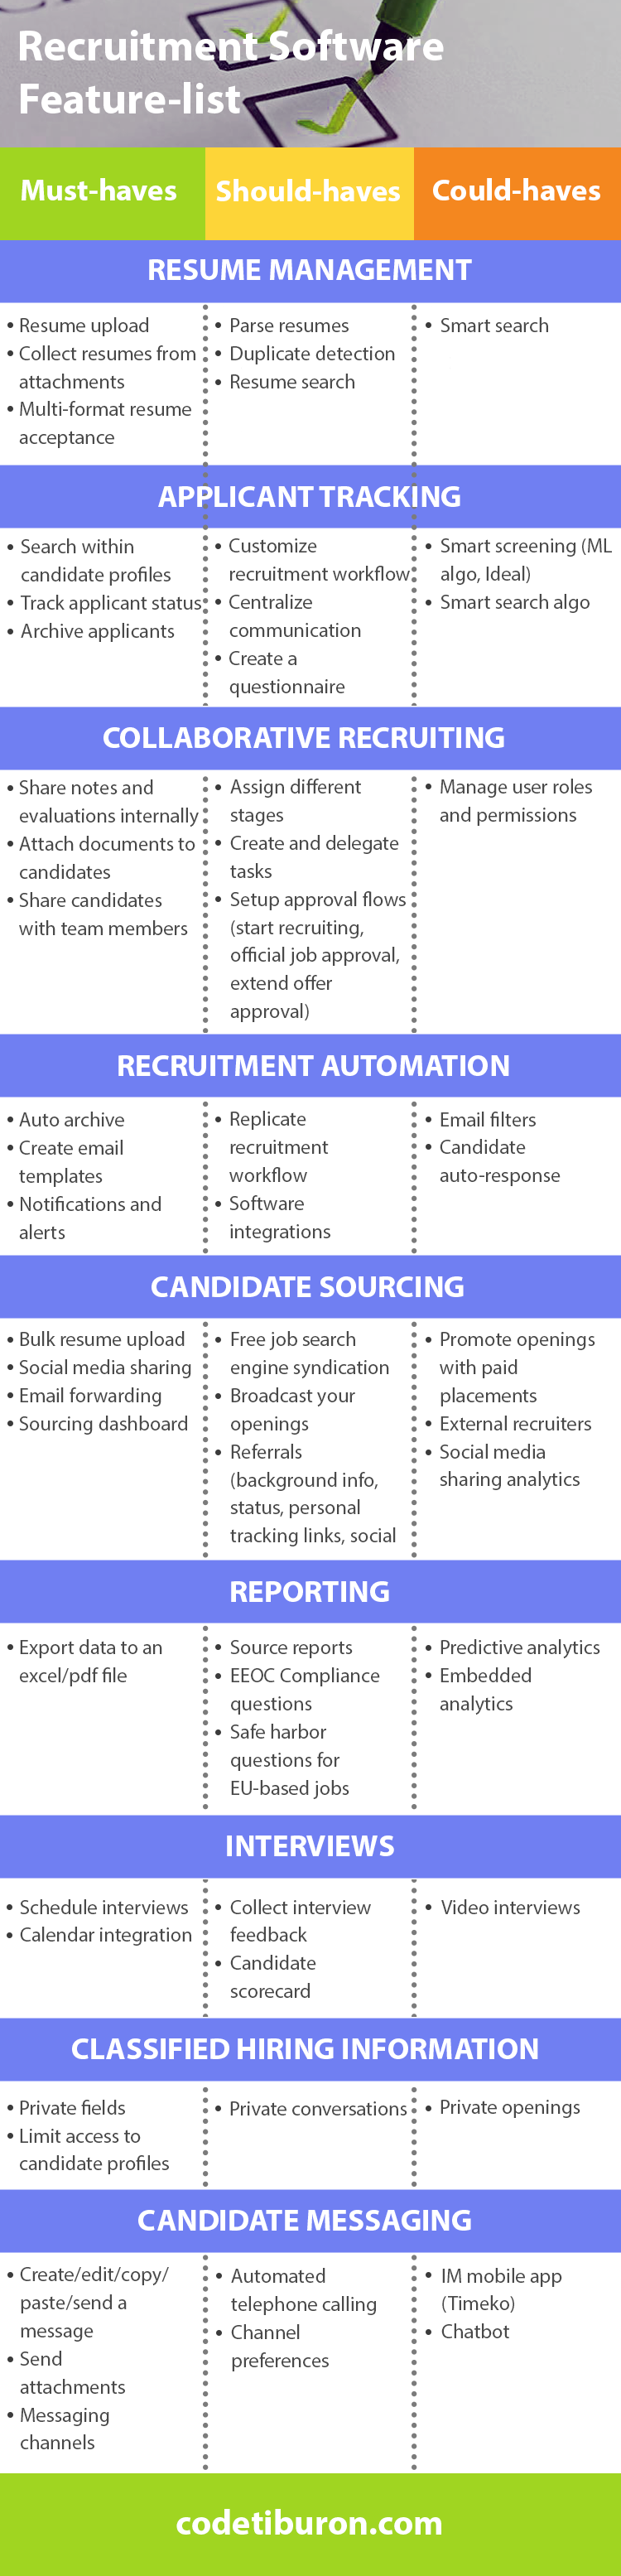 Recruitment software feature-list